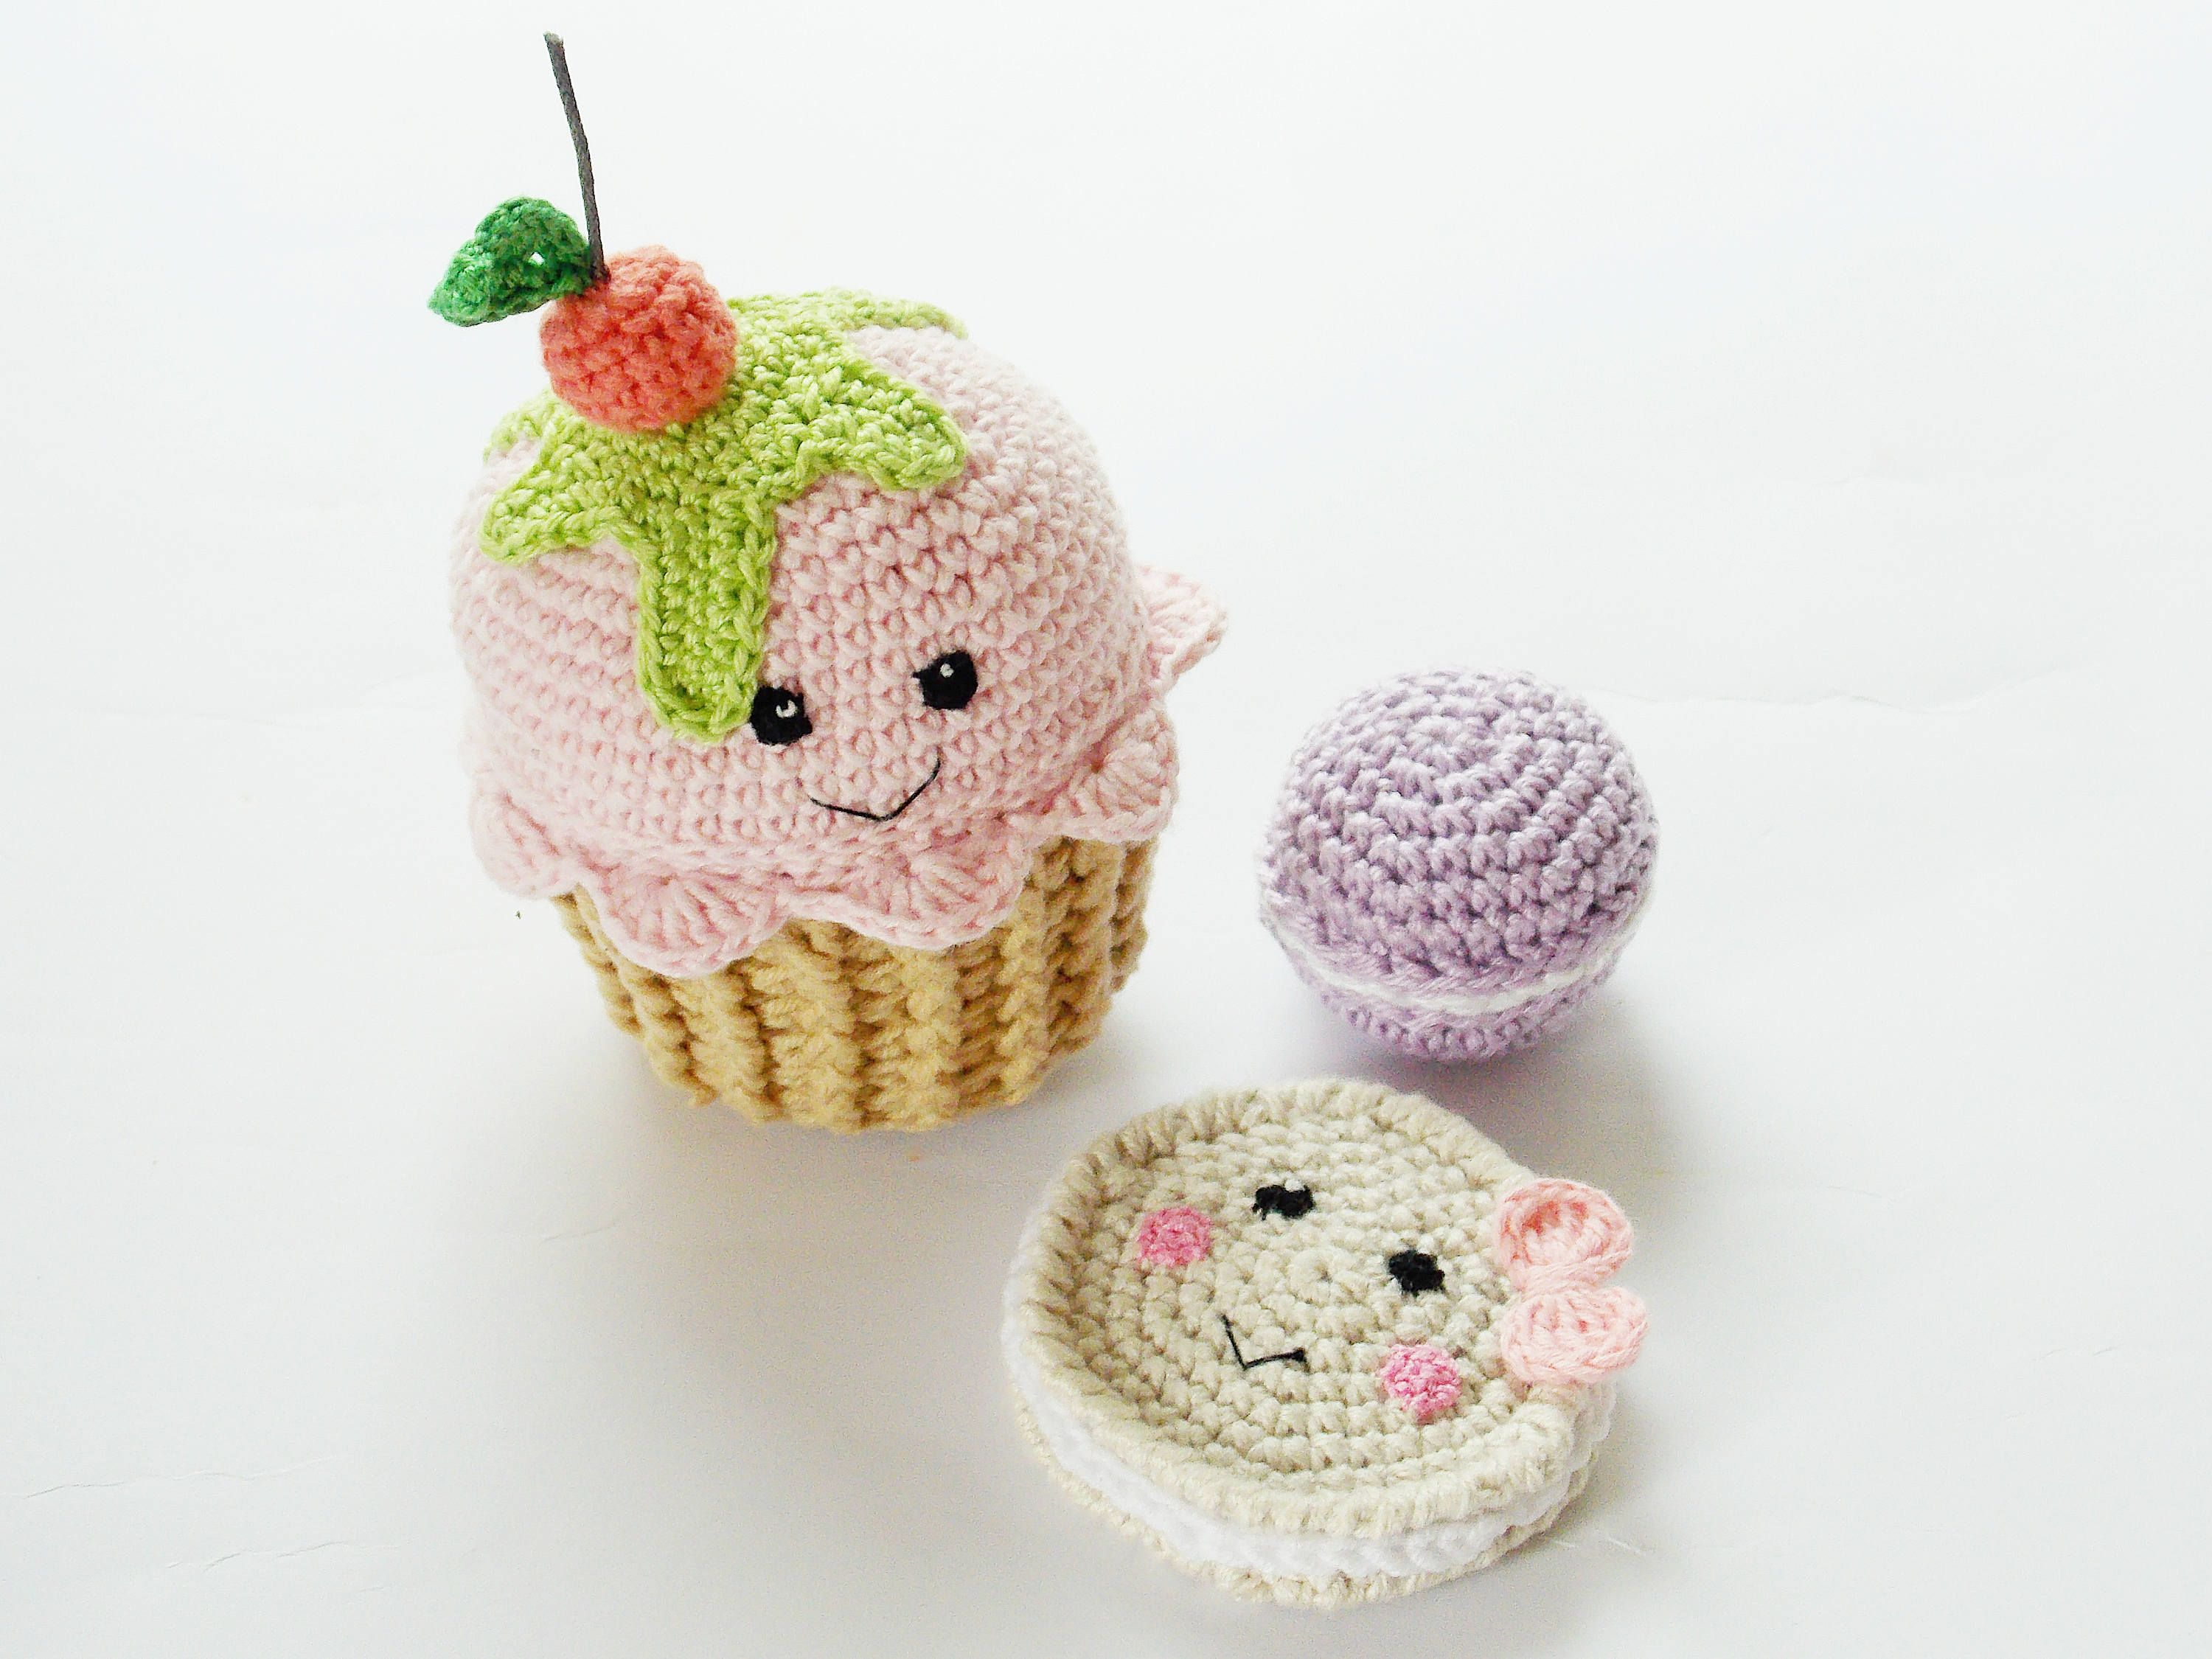 Crocheted Rattle eco friendly toy nursery decor baby shower